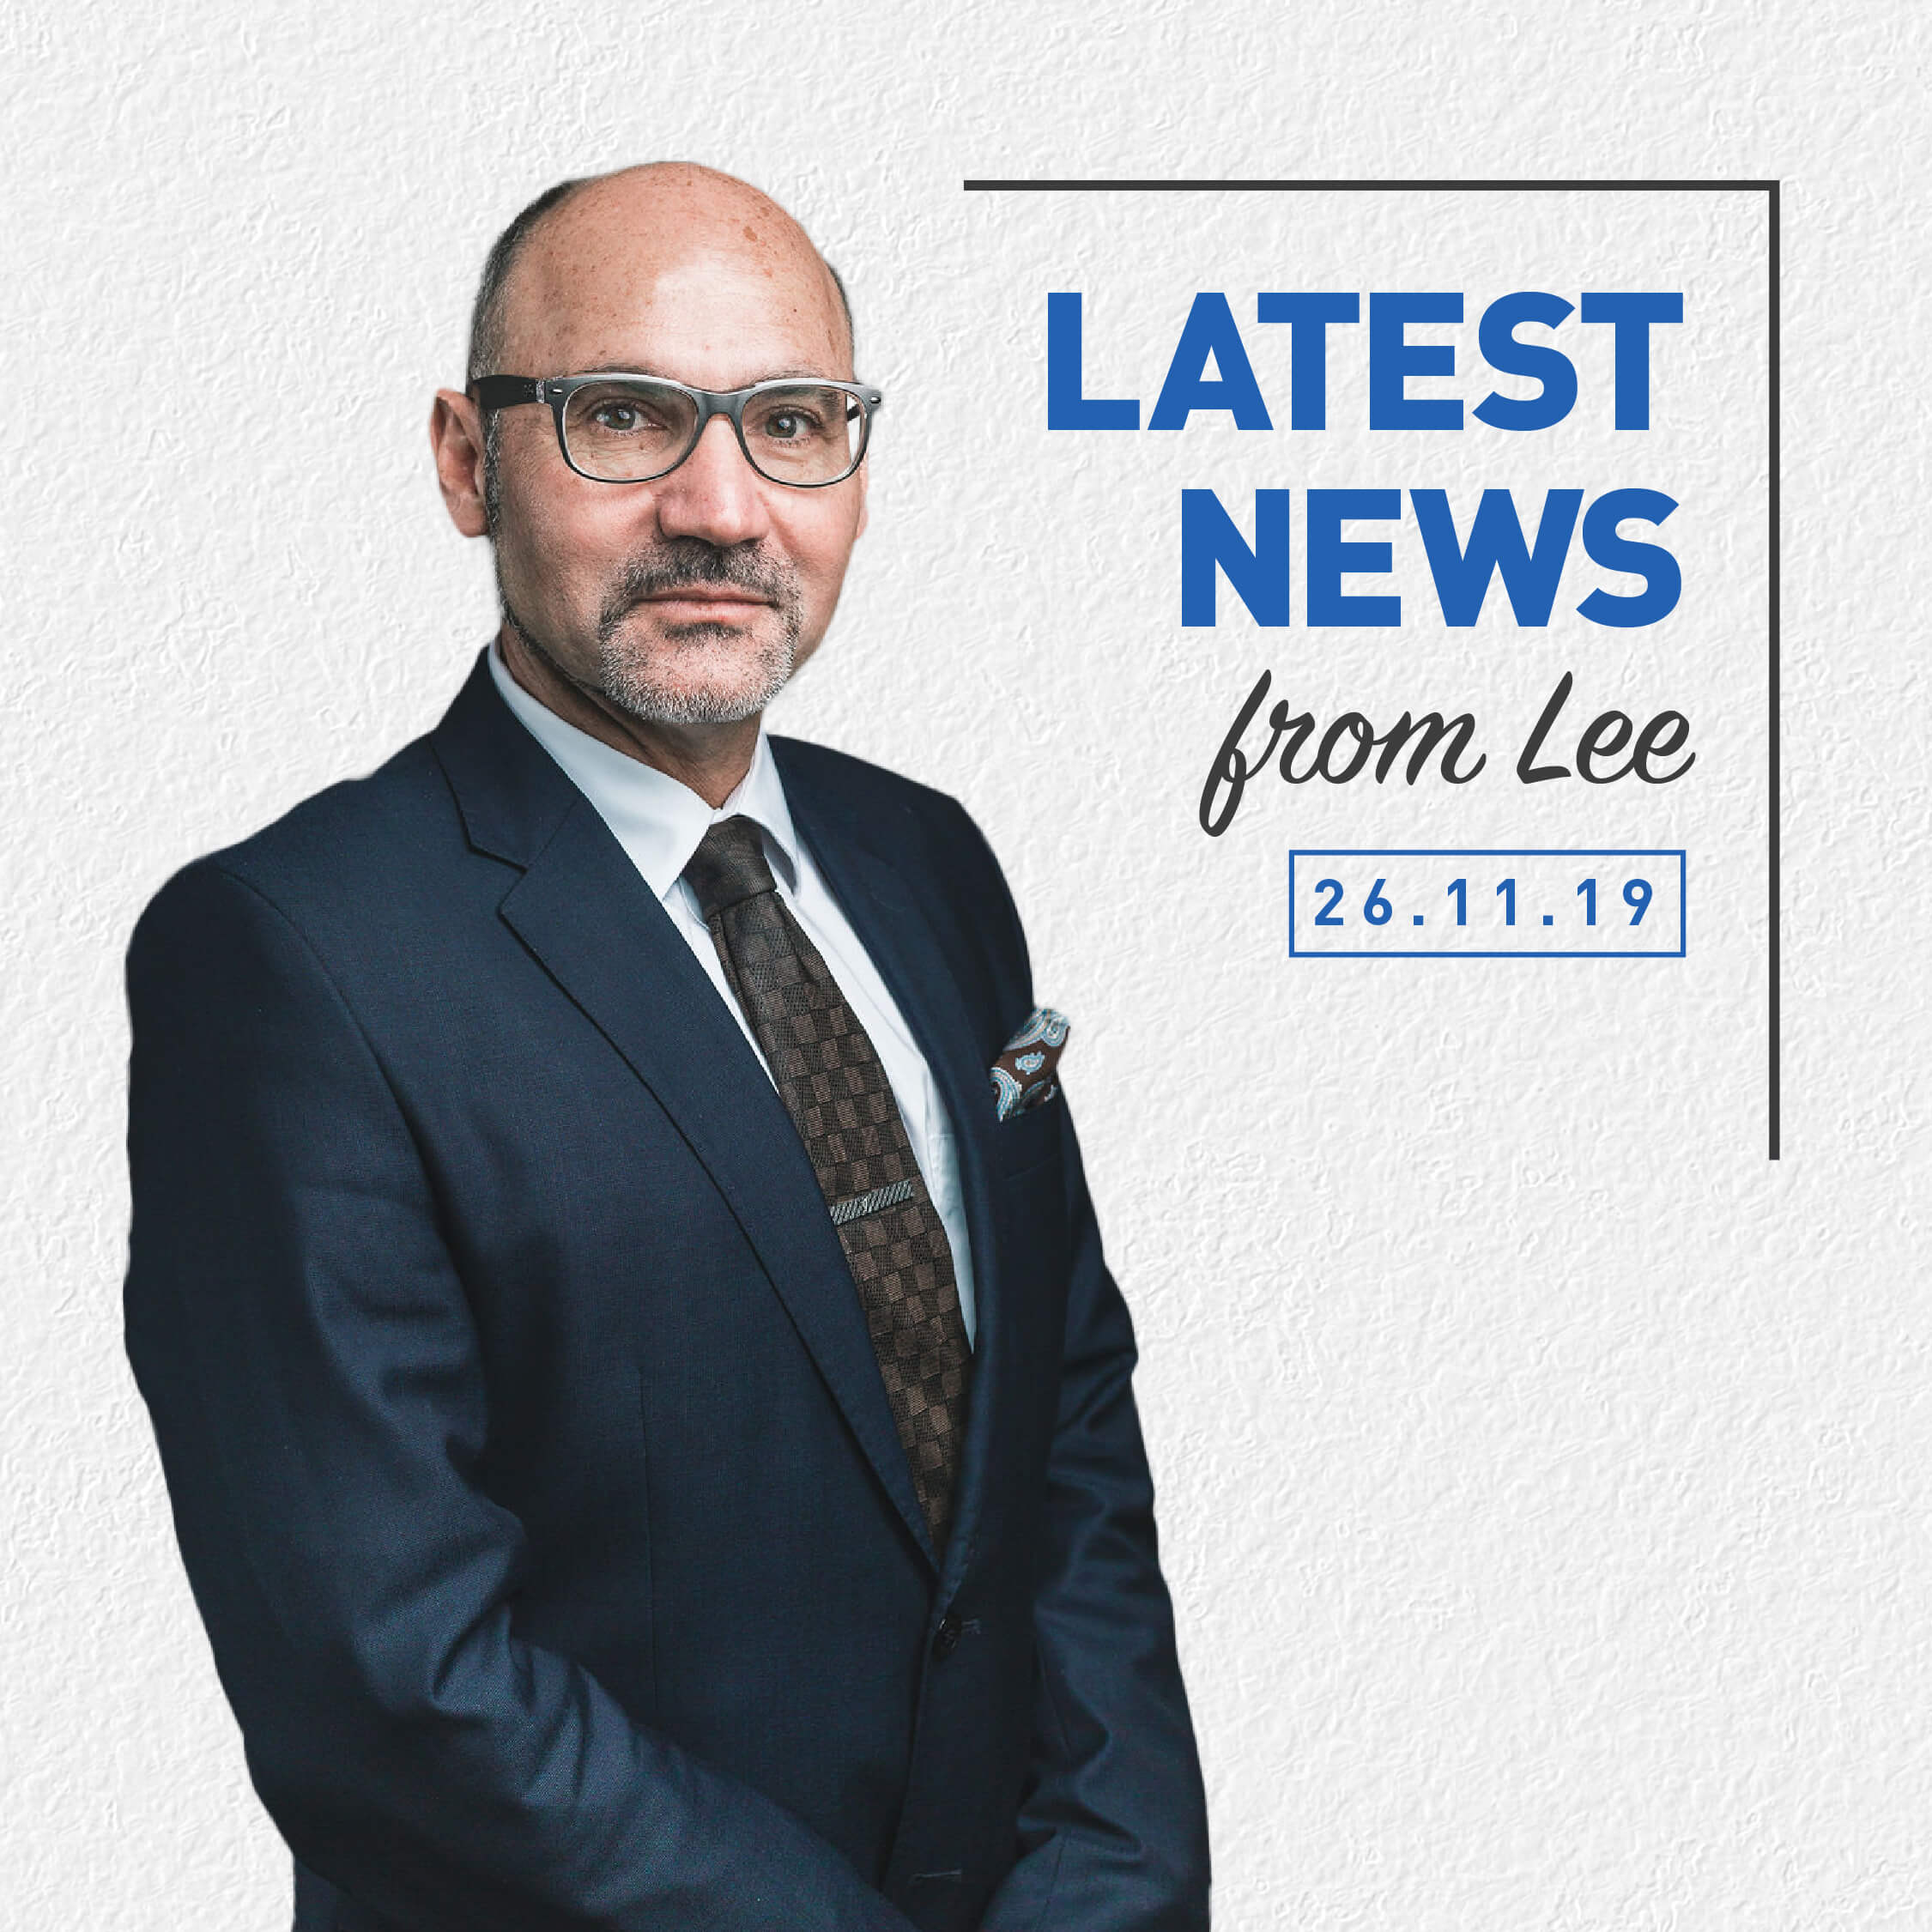 Workers Compensation News, Latest News From Lee 26th November 2019 – Workers Compensation, Brydens Lawyers